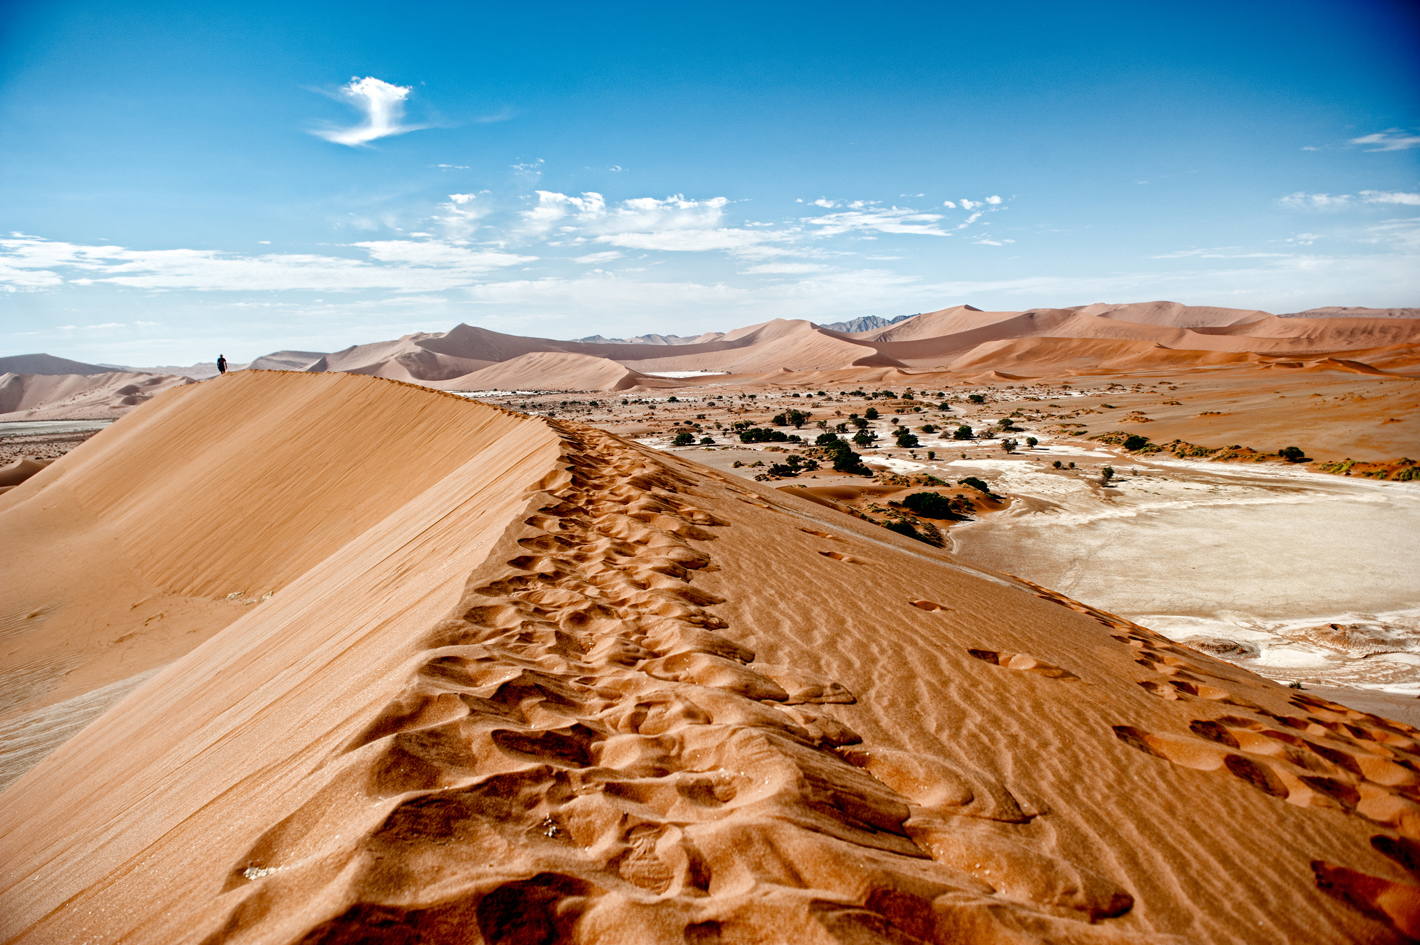 Footprints in Namibian dunes